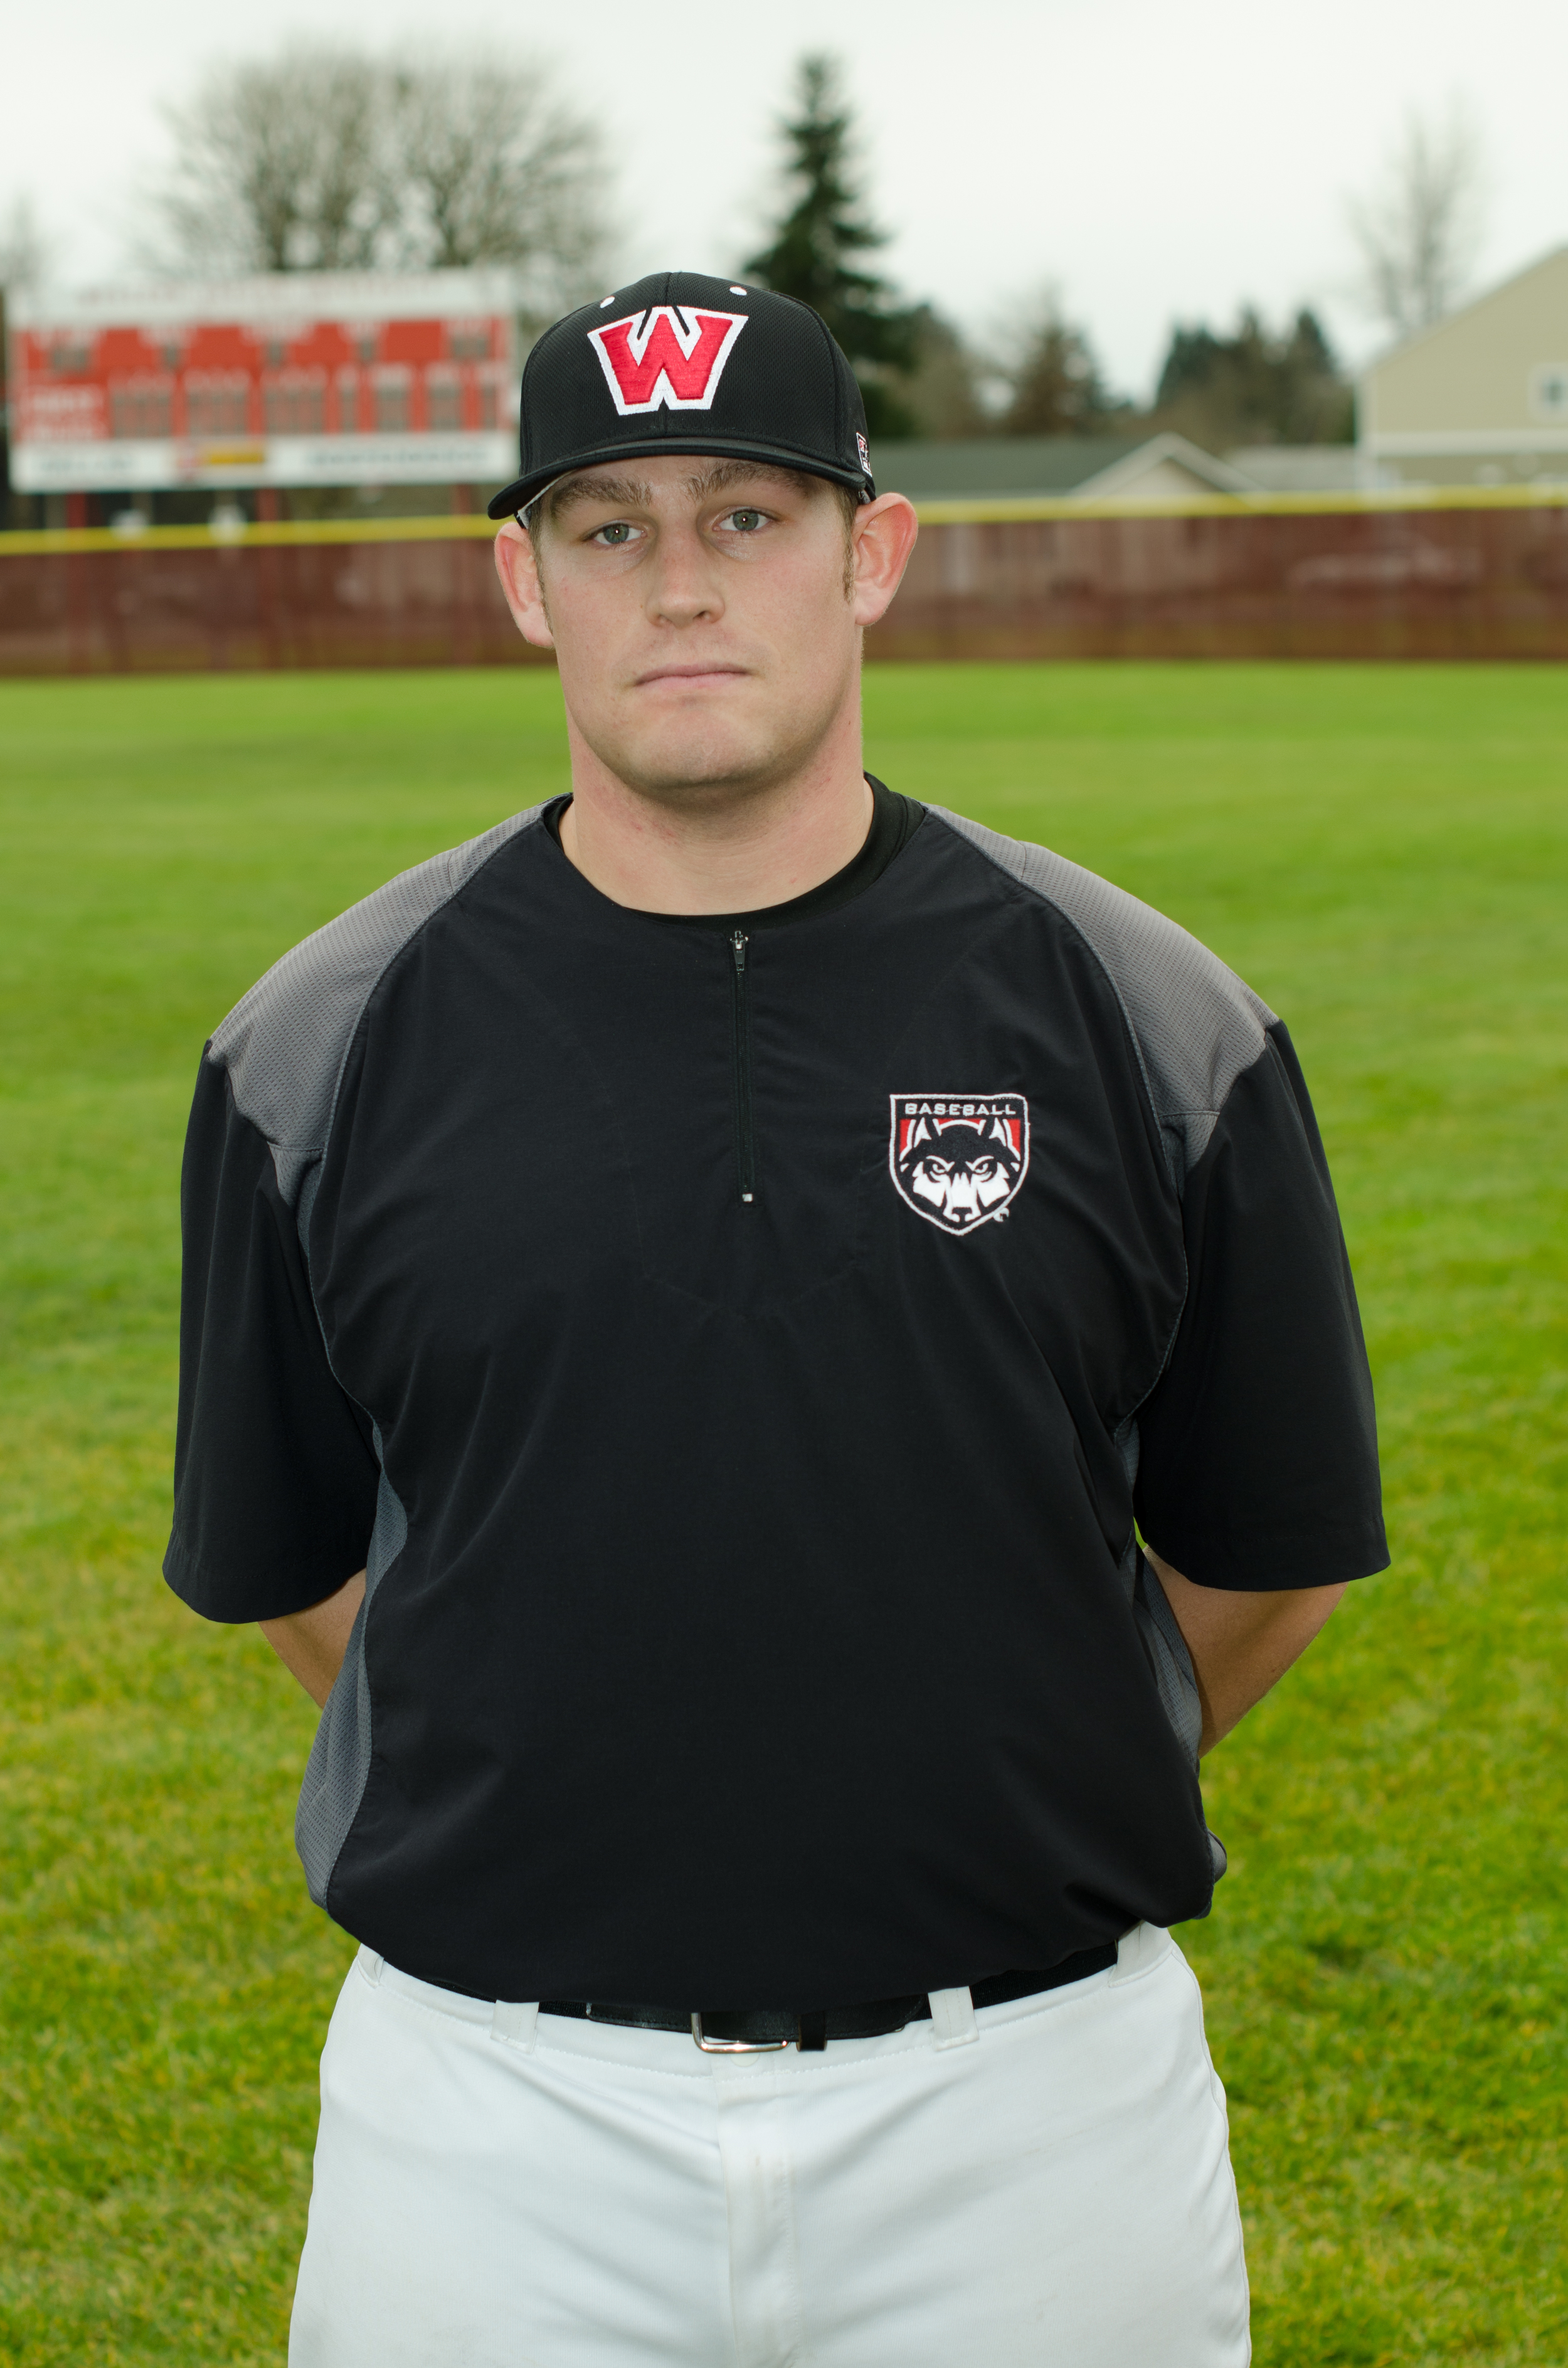 Miles Kizer will be the first of two assistant coaches on AJ Proszek's staff, the AppleSox announced Thursday.